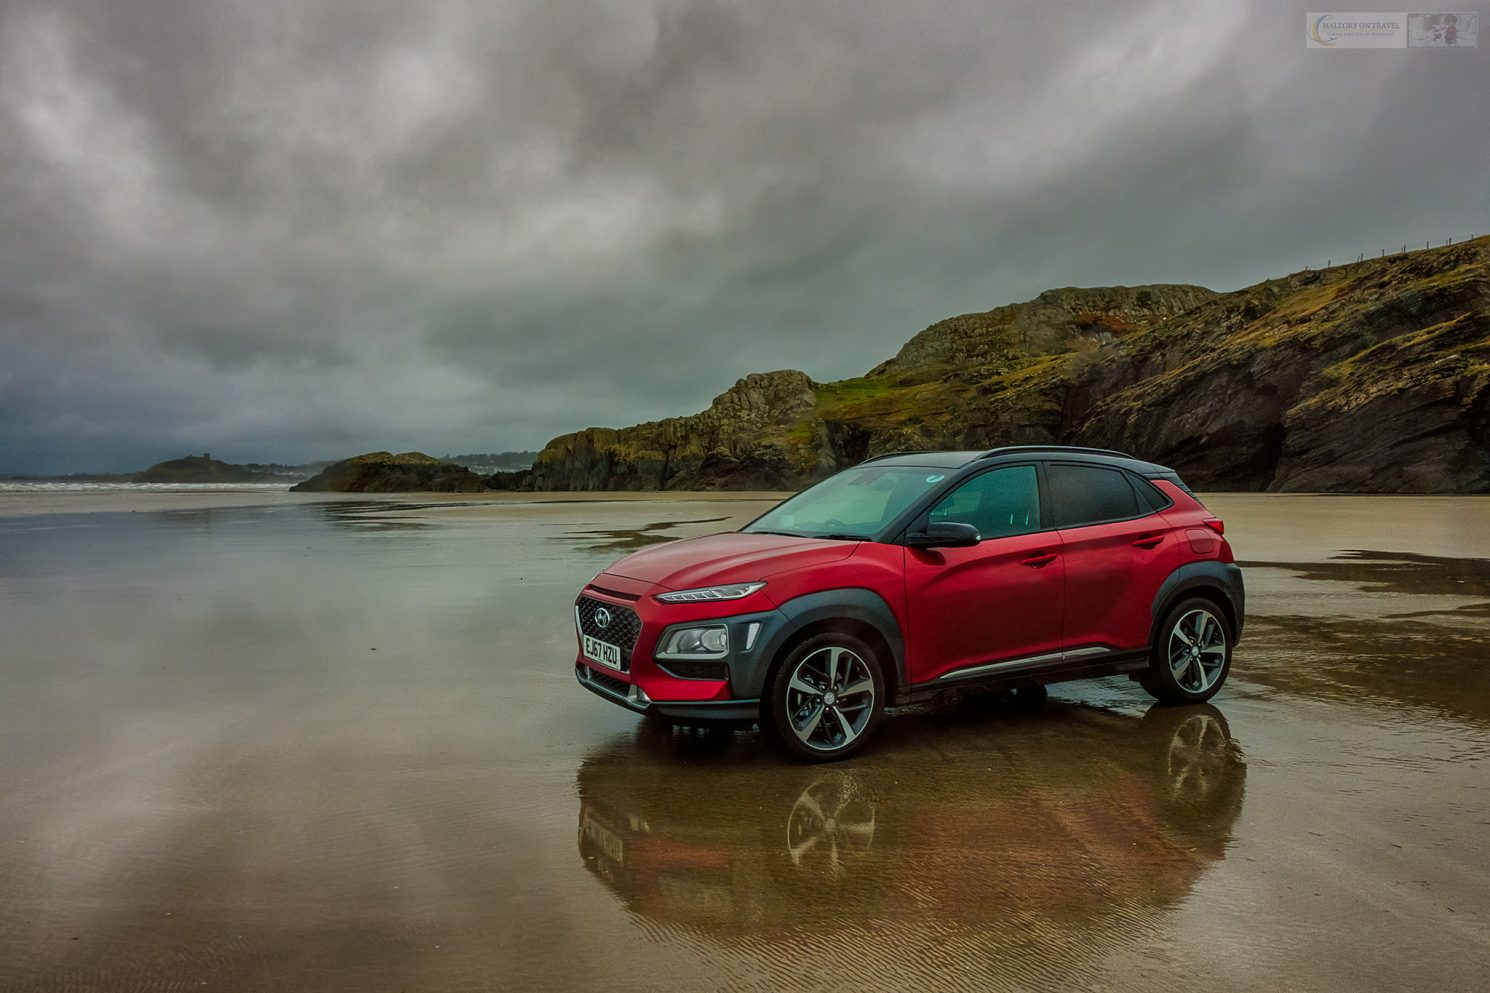 The Hyundai Kona Premium SE at Black Rock Sands, Porthmadog in the Snowdonia National Park, north Wales on Mallory on Travel adventure travel, photography, travel Iain Mallory_Hyundai 006